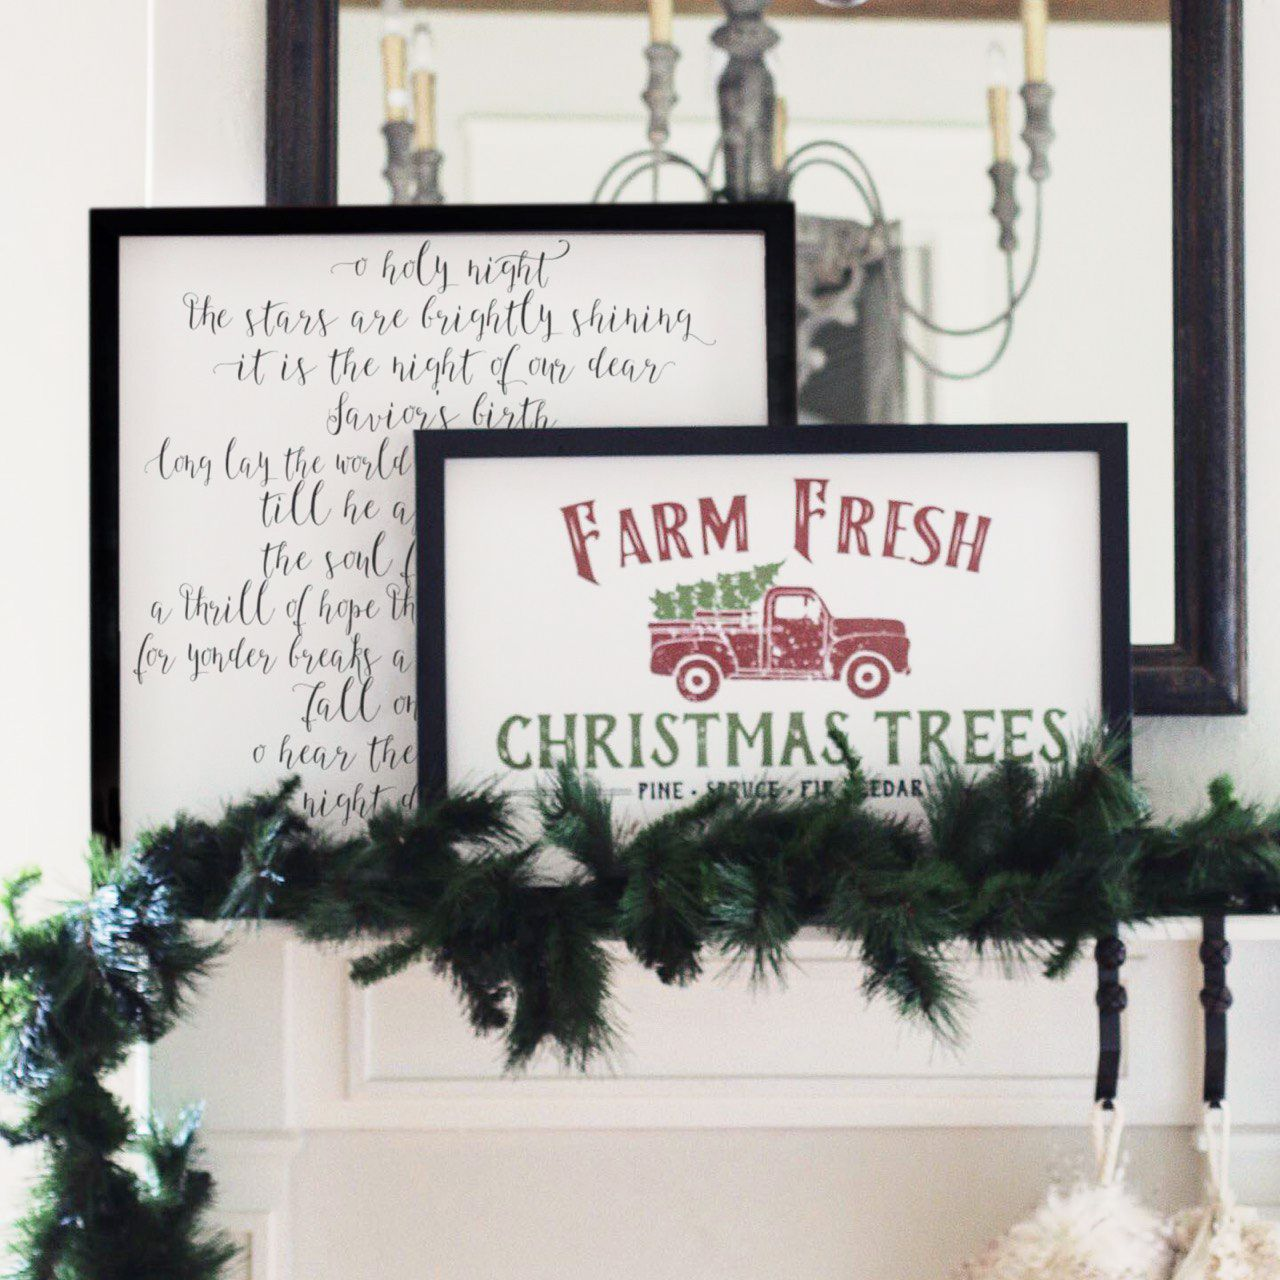 Our First Christmas Gift To You All Holiday Wood Framed Signs Now Under 50 Fresh Christmas Trees Christmas Decorations To Make Christmas Tree Farm